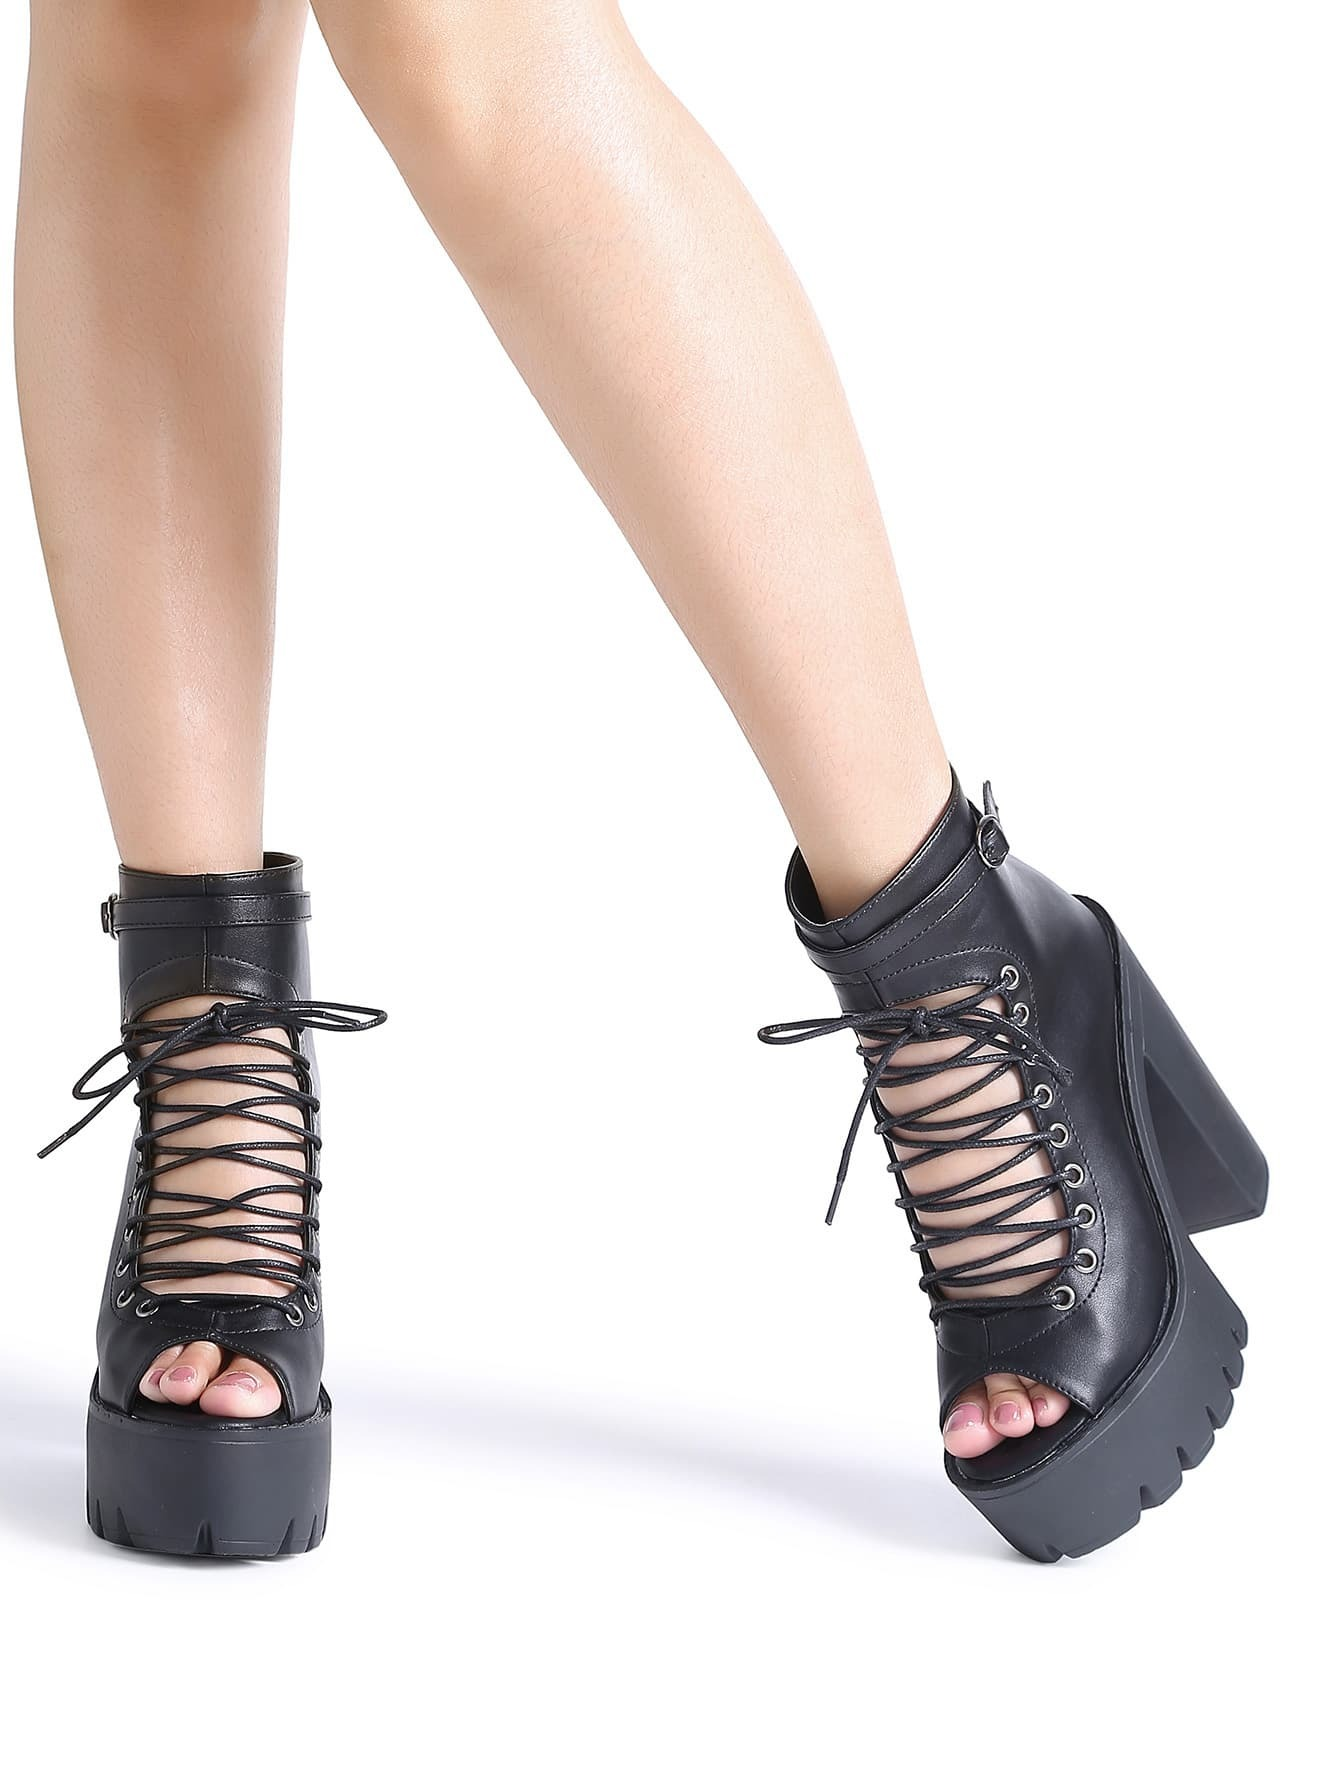 fde46d5eac36 Black Peep Toe Lace Up Platform Chunky Heeled Sandals EmmaCloth ...